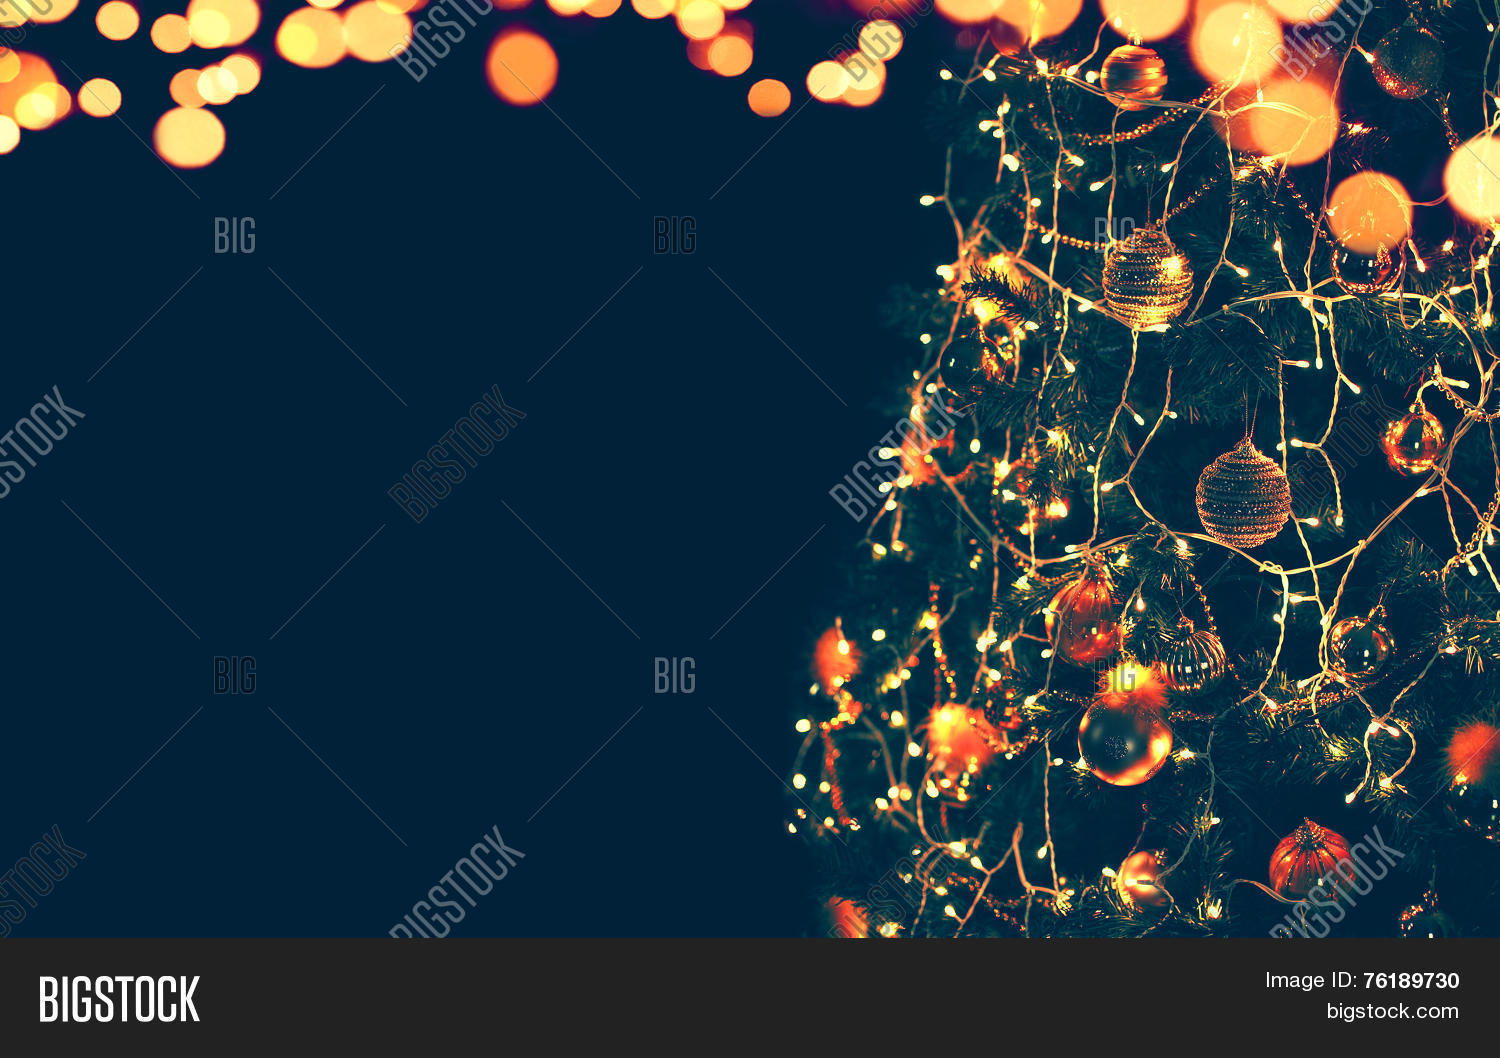 Magic Christmas Tree Lights Bokeh Image Photo Bigstock - Magic Christmas Tree